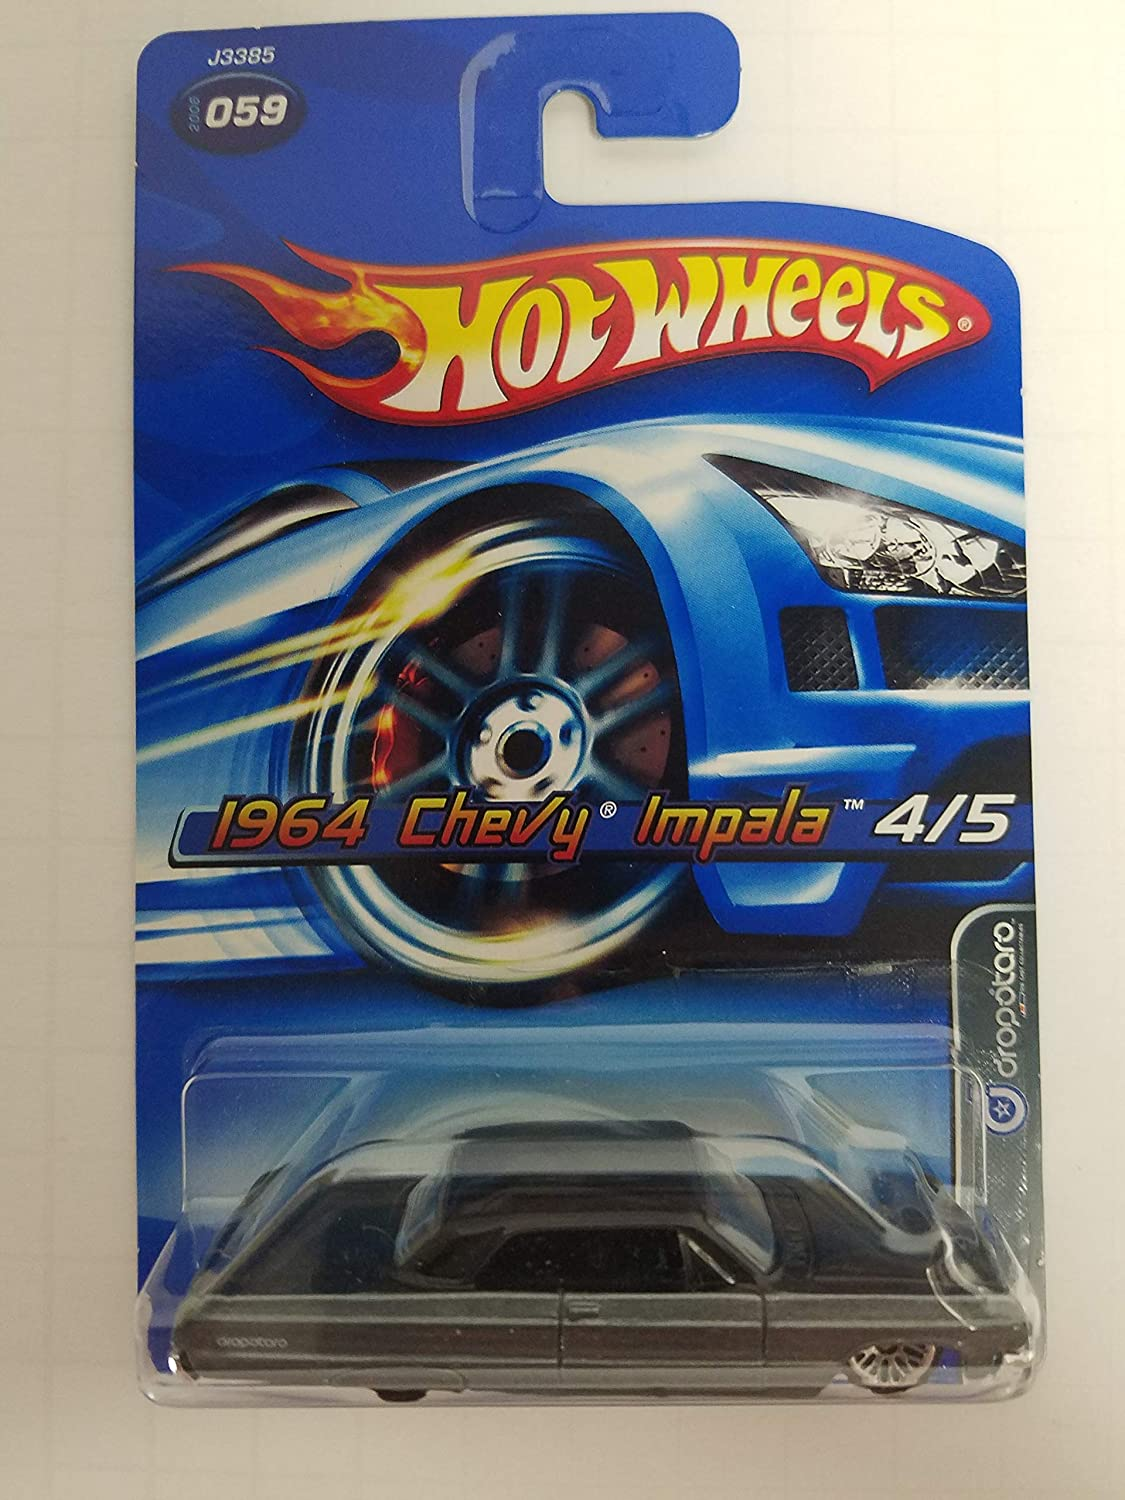 1964 Chevy Impala Dropstars 4/5 No. 059 Hot Wheels 2006 1/64 scale diecast car